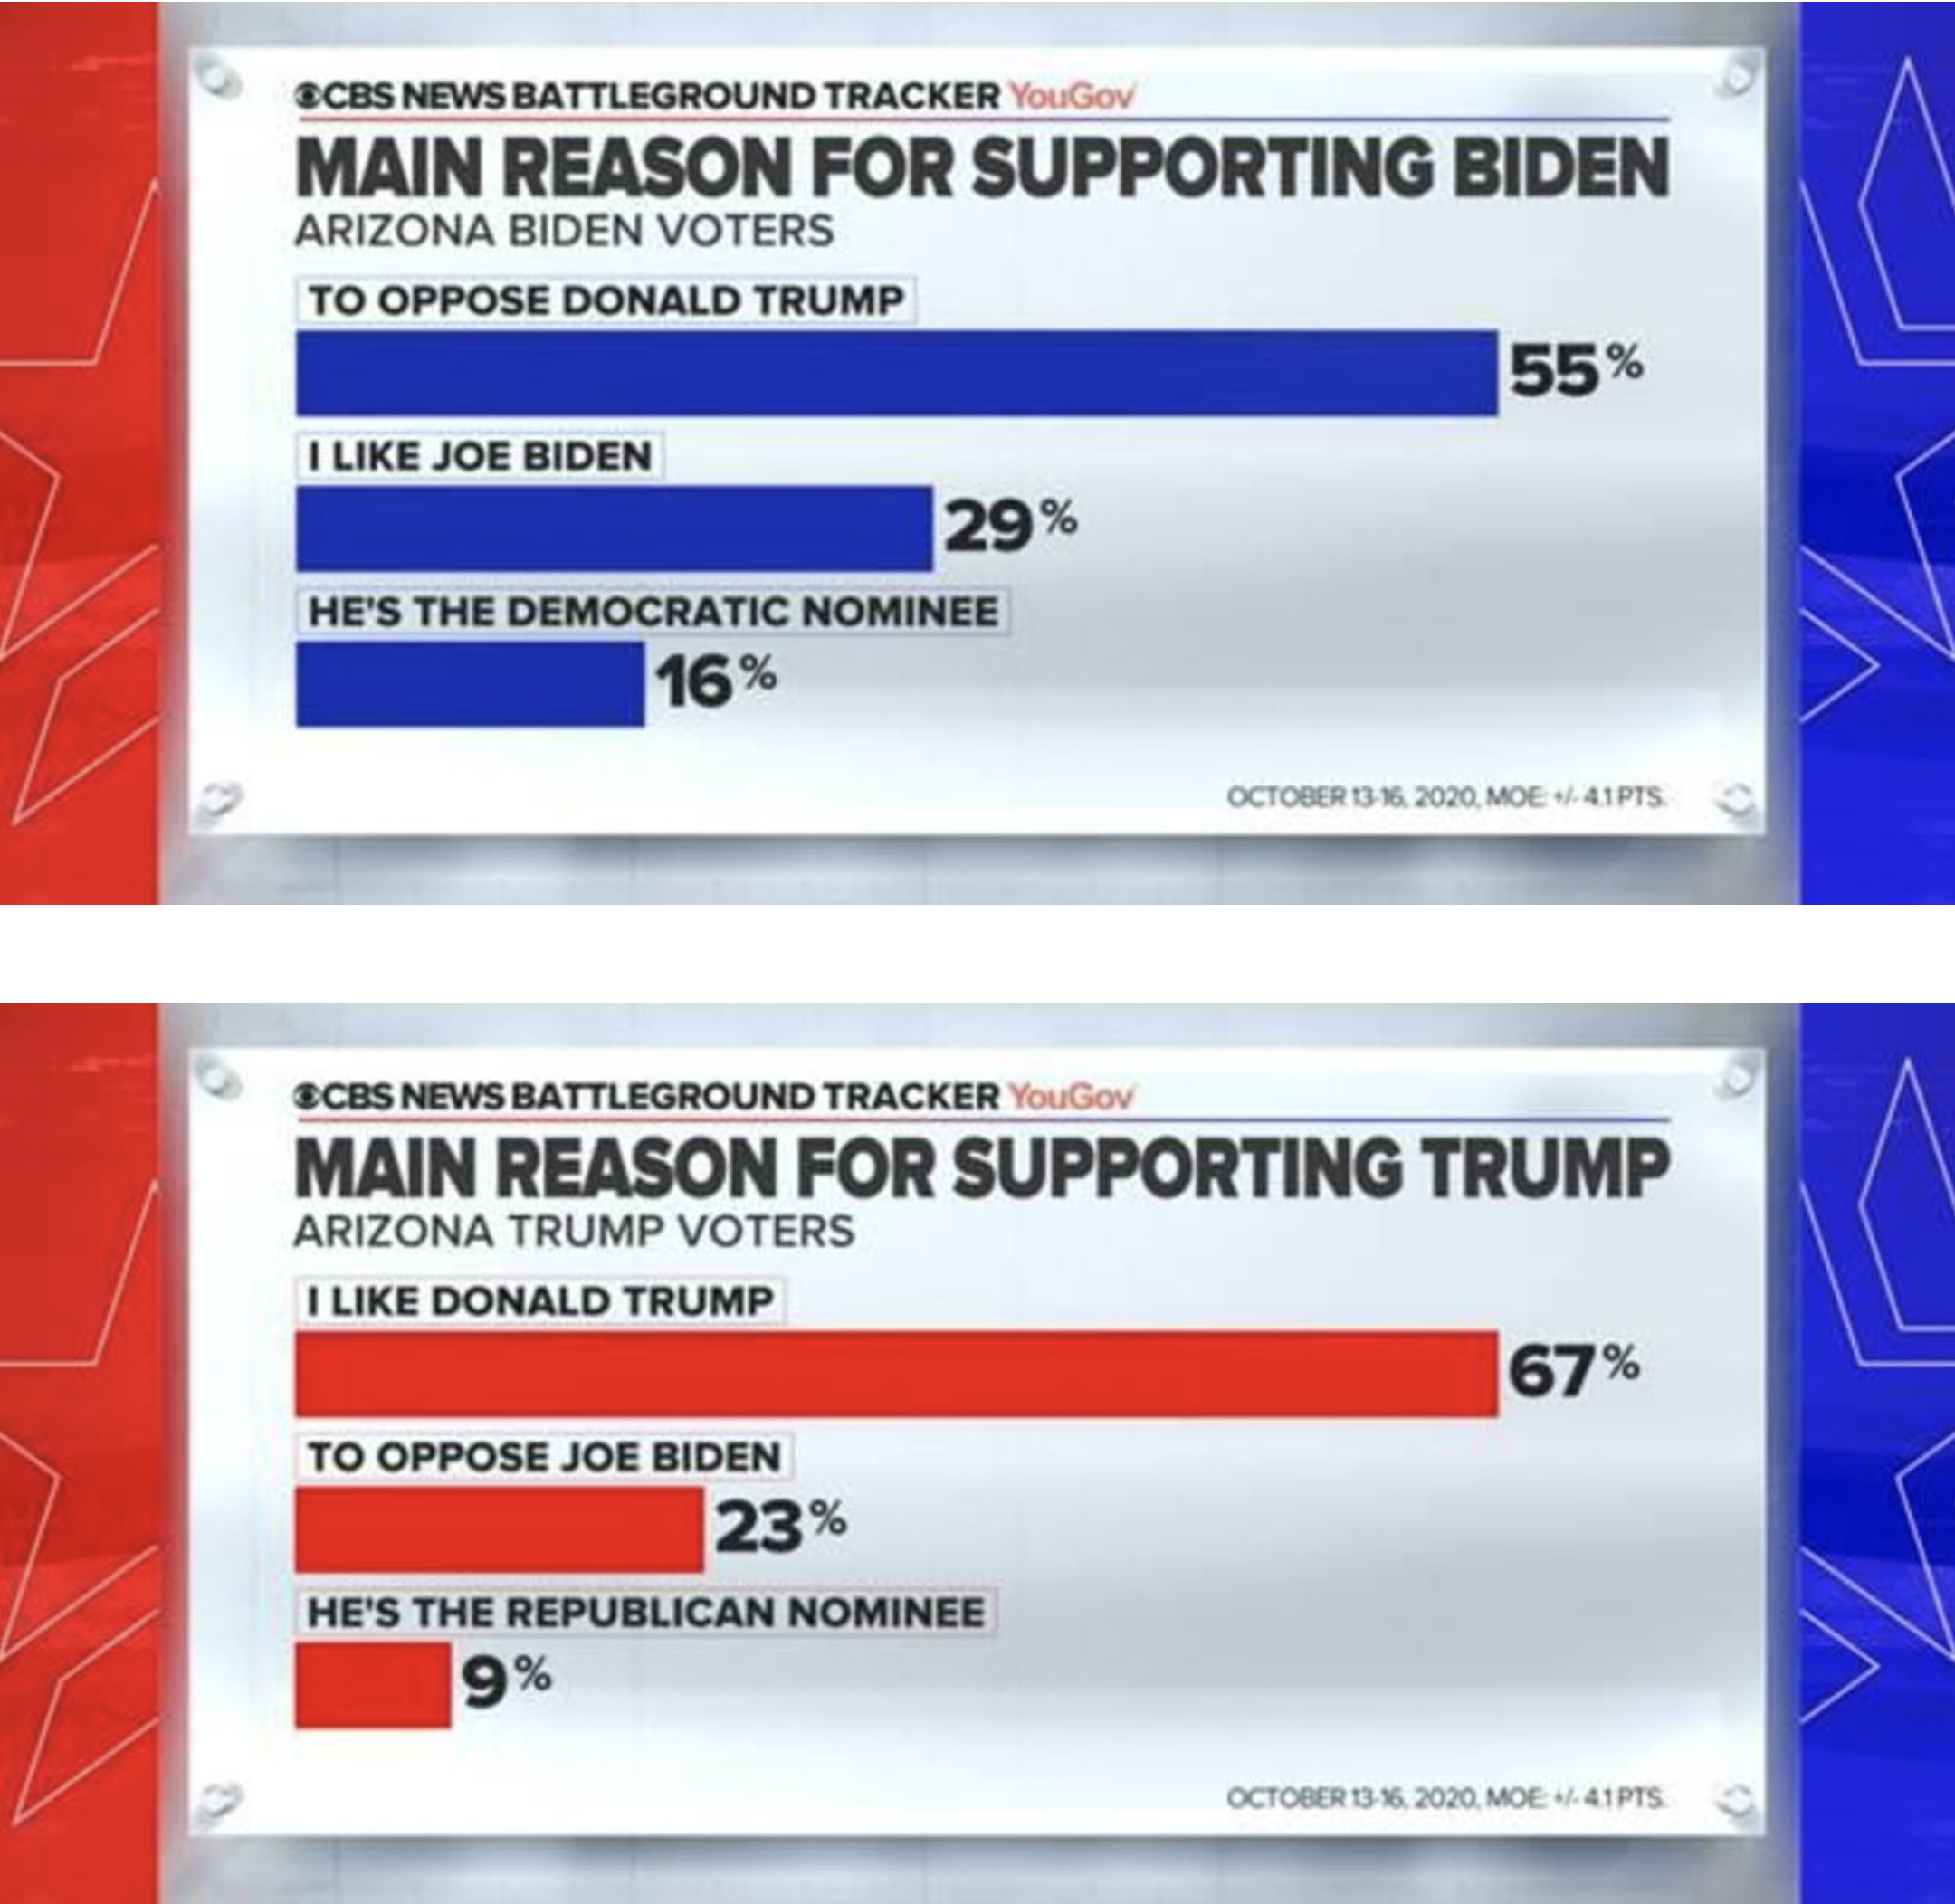 Screen-Shot-2020-10-18-at-11.53.27-AM Updated 'Swing State' Poll Results Show Dramatic Double-Digit Gap Election 2020 Featured Politics Polls Top Stories